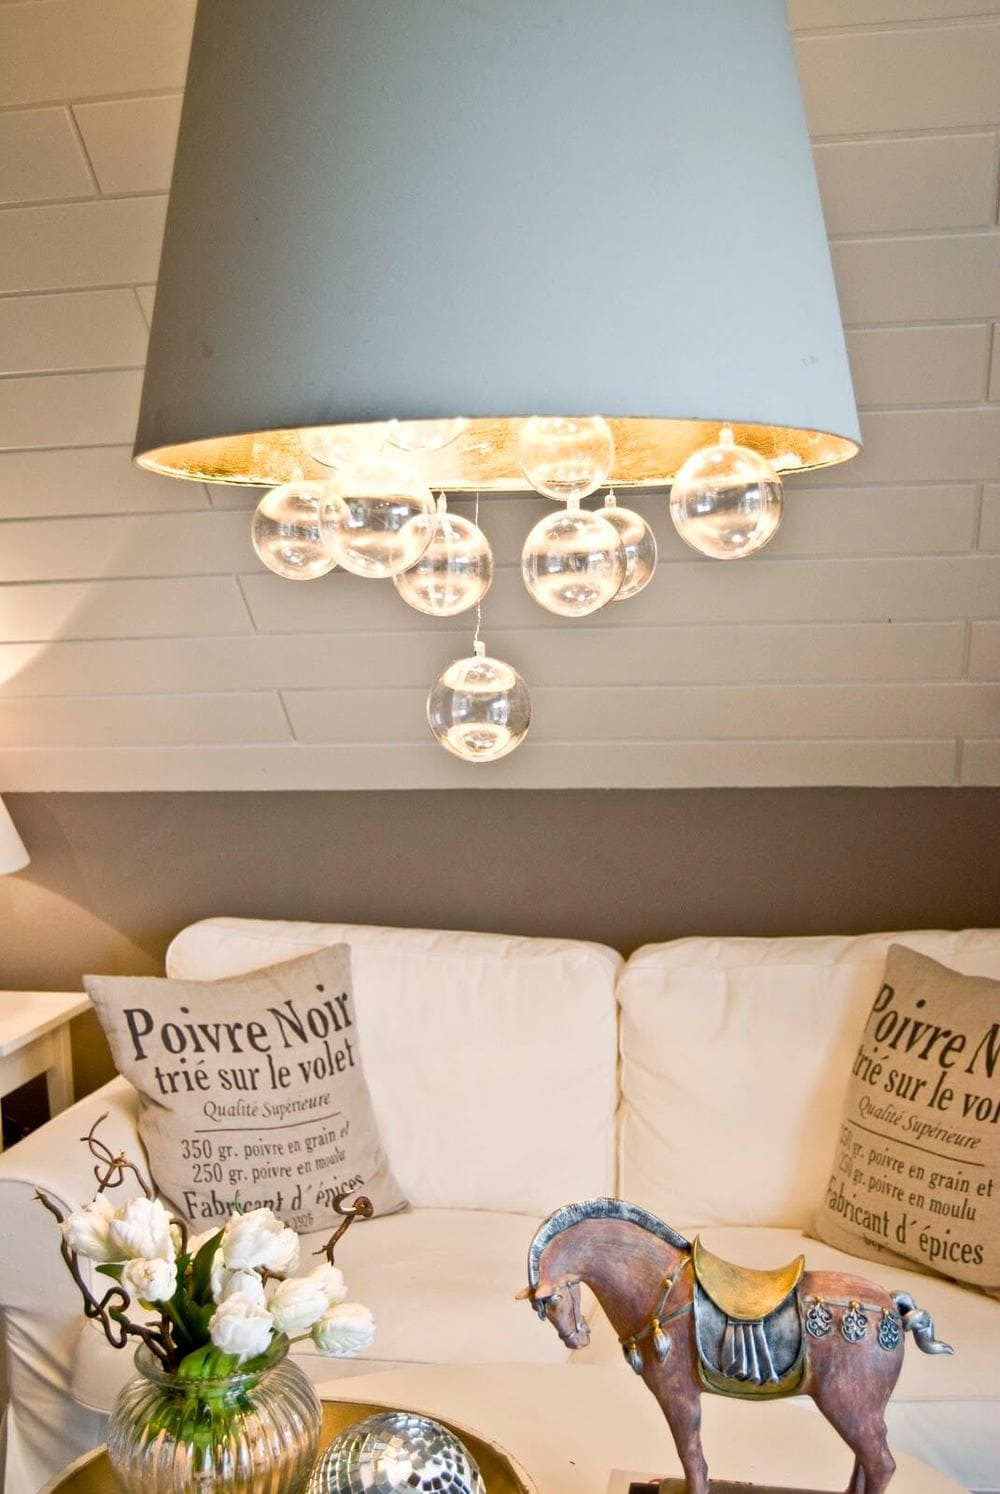 Best ideas about DIY Home Decor Crafts . Save or Pin 20 DIY Home Projects Now.